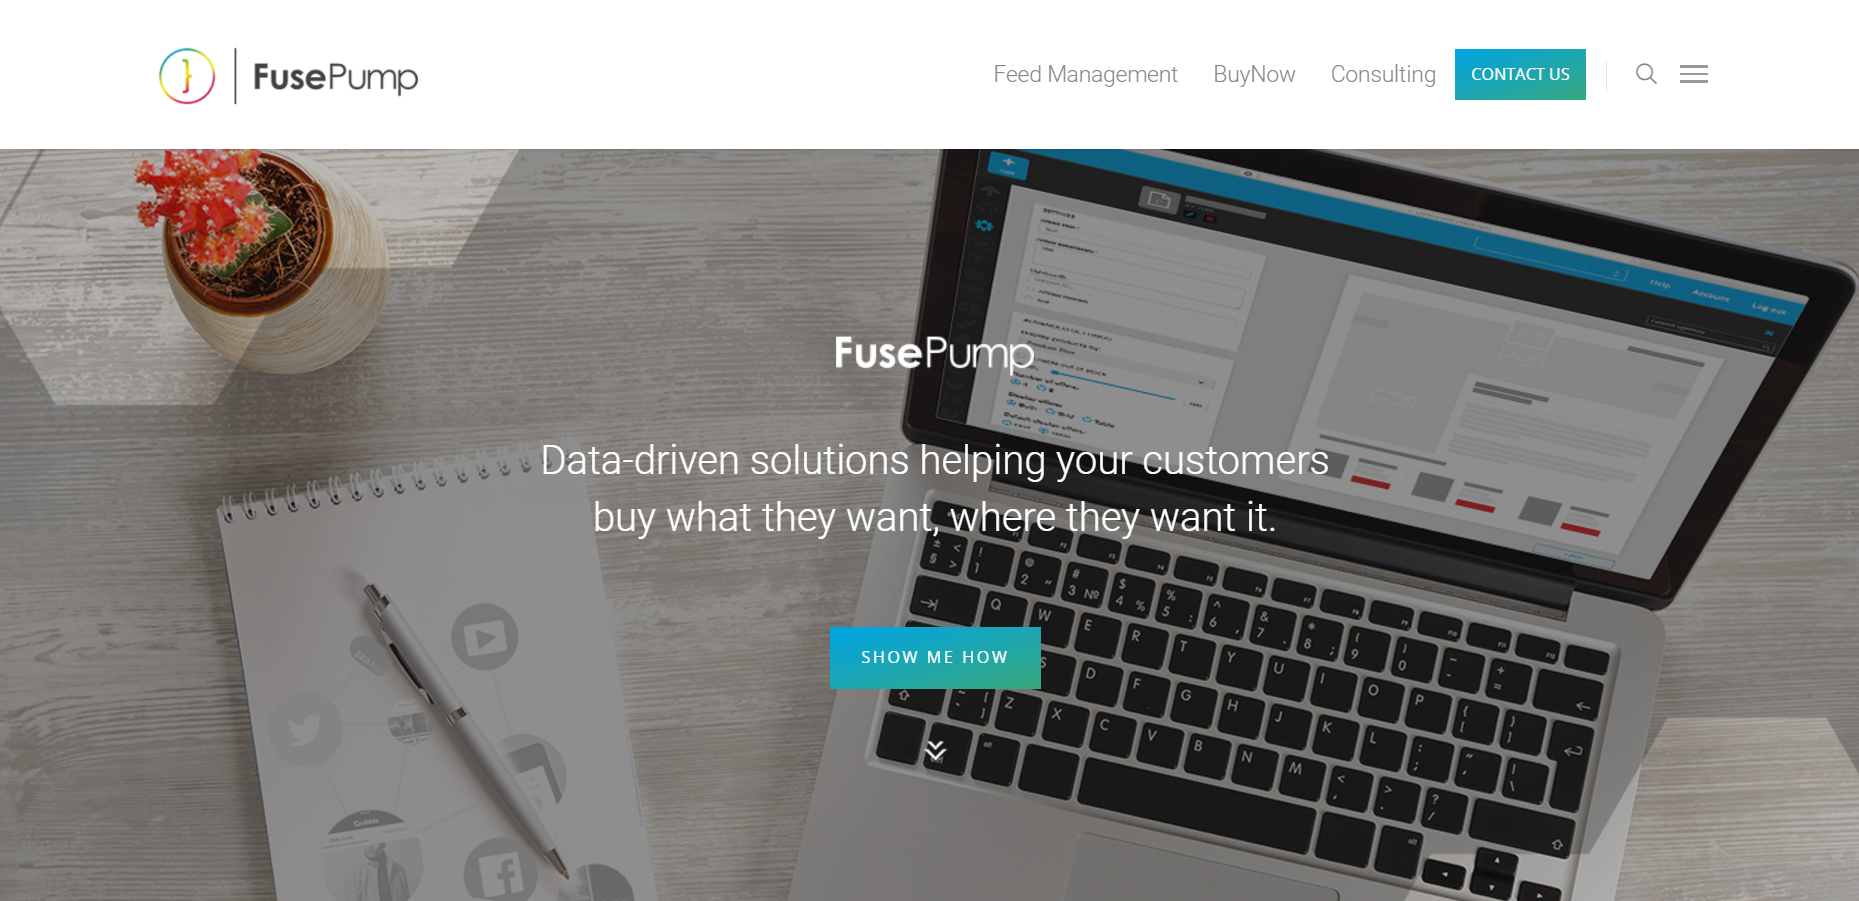 Platform for building and sharing customized ecommerce modules built with Python and Angular - UK Advertising Project - FusePump - Case Study